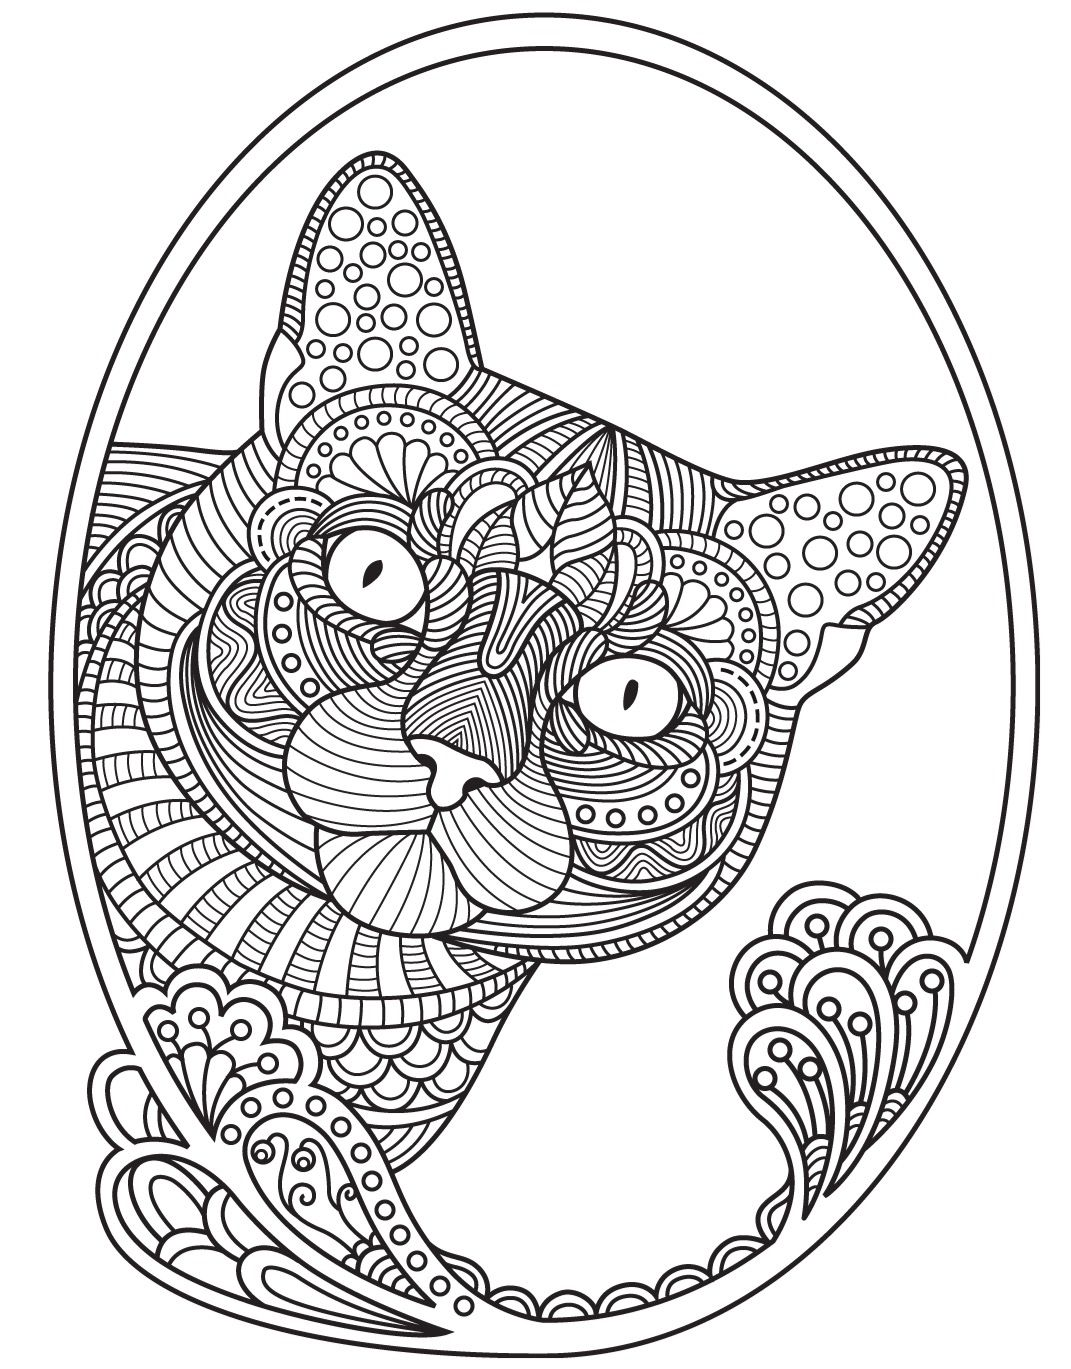 Cats To Color Colorish Free Coloring App For Adults By Goodsofttech Animal Coloring Pages Mandala Coloring Pages Cat Coloring Page